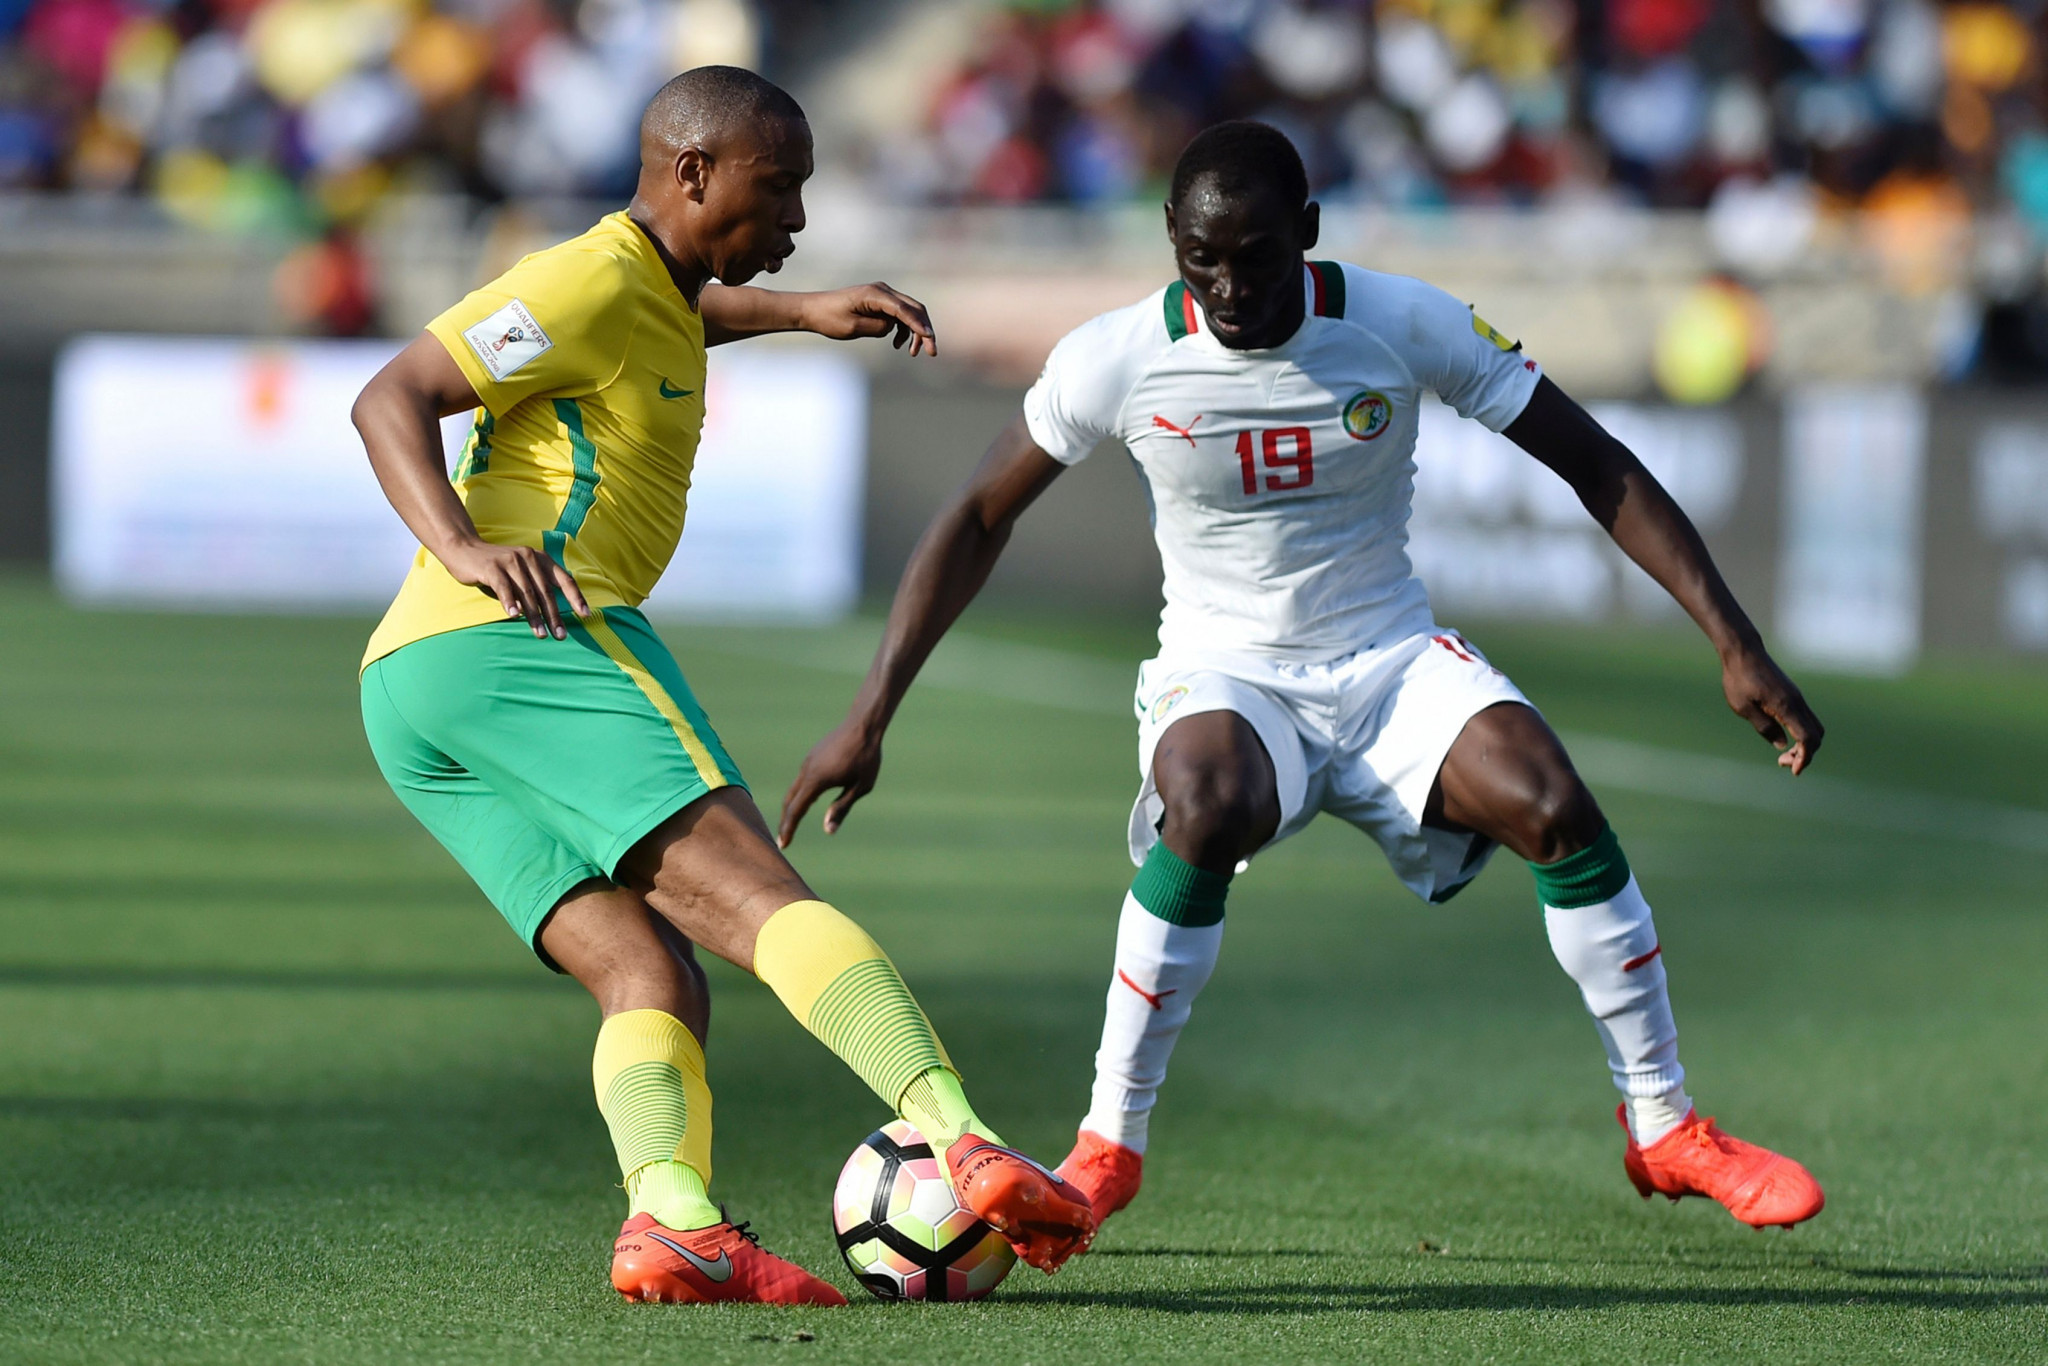 South Africa ponder appeal after FIFA order World Cup qualifier to be replayed